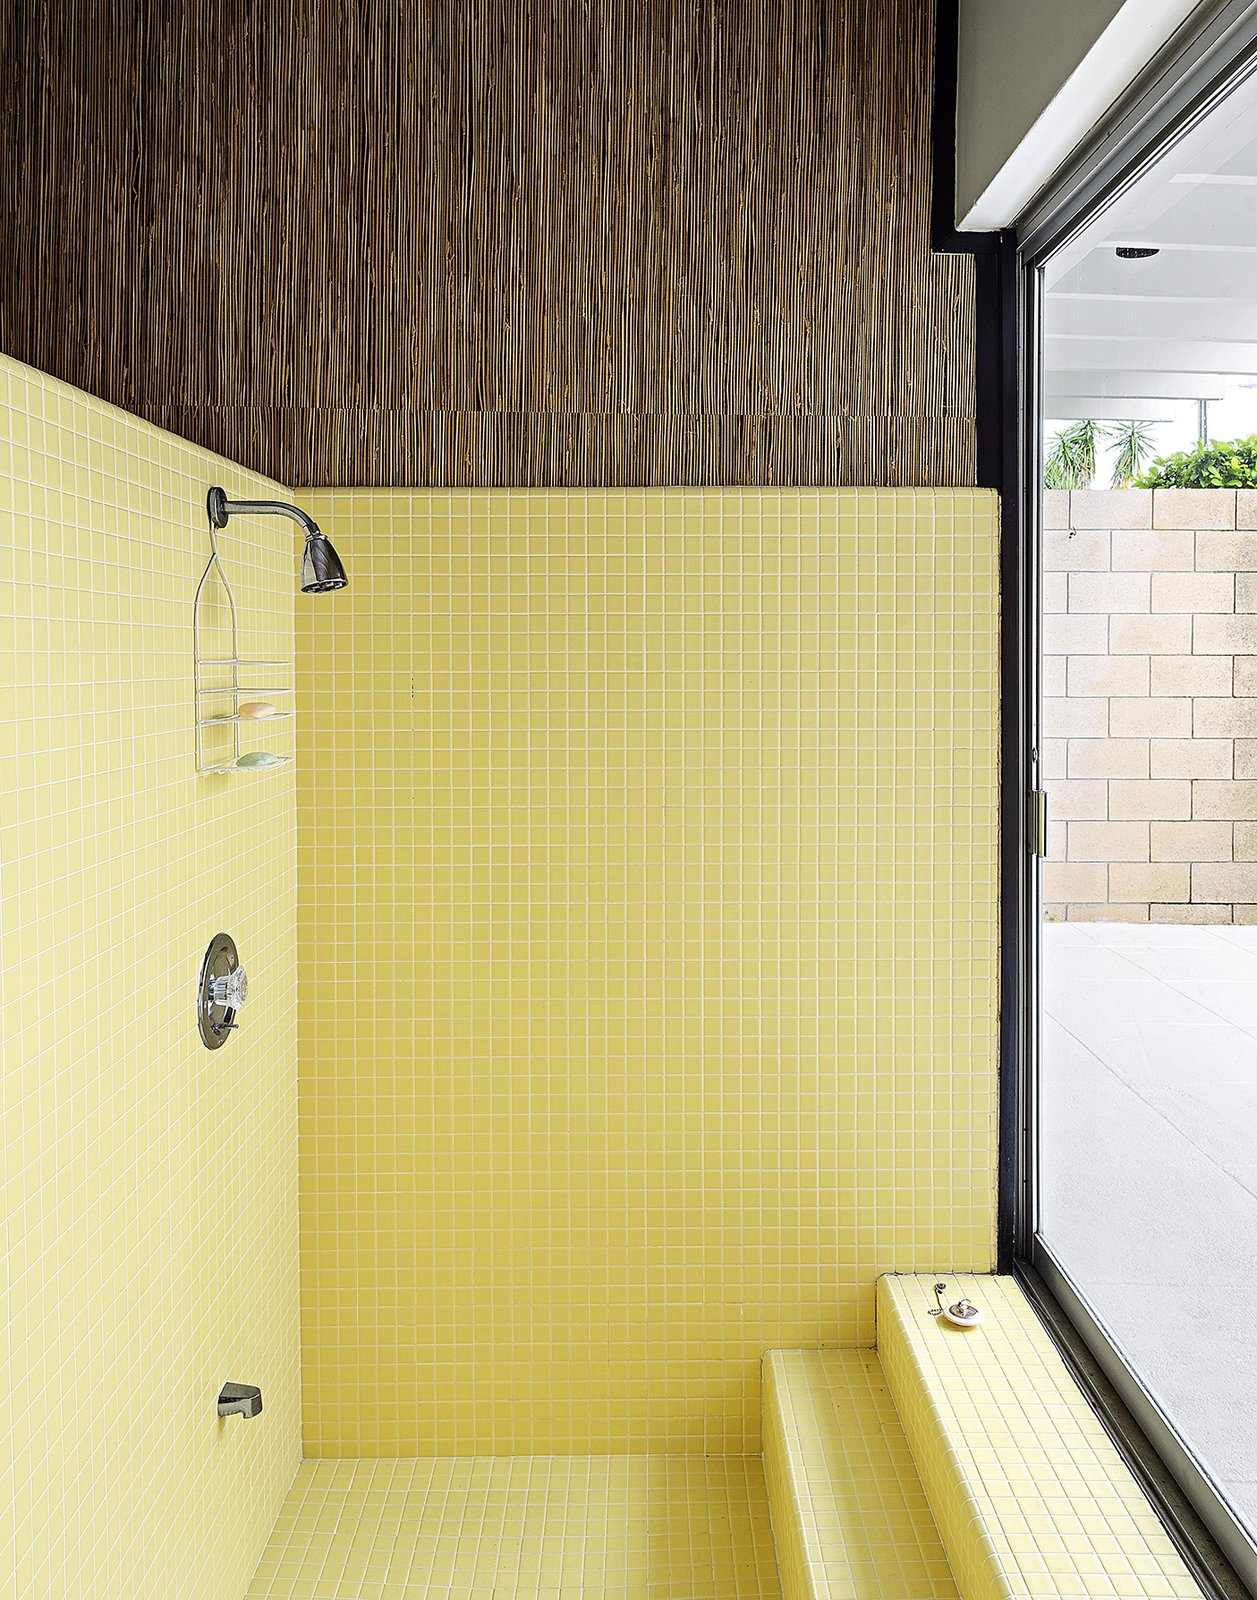 """Bath Room, Corner Shower, and Ceramic Tile Wall Bathroom Tile: The side-by-side bathrooms look out on a private courtyard through floor-to-ceiling sliding glass doors. They feature original tile in the sunken showers—one in butter yellow, the other in light gray. """"The tiles are heavy, real chunky, and of the period,"""" says Christopher. He had them completely restored, working alongside the tilers and filling cracks with a porcelain paint pen for two days straight. """"For something from 1963, they're really in immaculate shape,"""" he says.  My Photos from Pop Art, Street Art, and Space Age Furniture Collide at a Painter's Midcentury Ranch Home in Florida"""